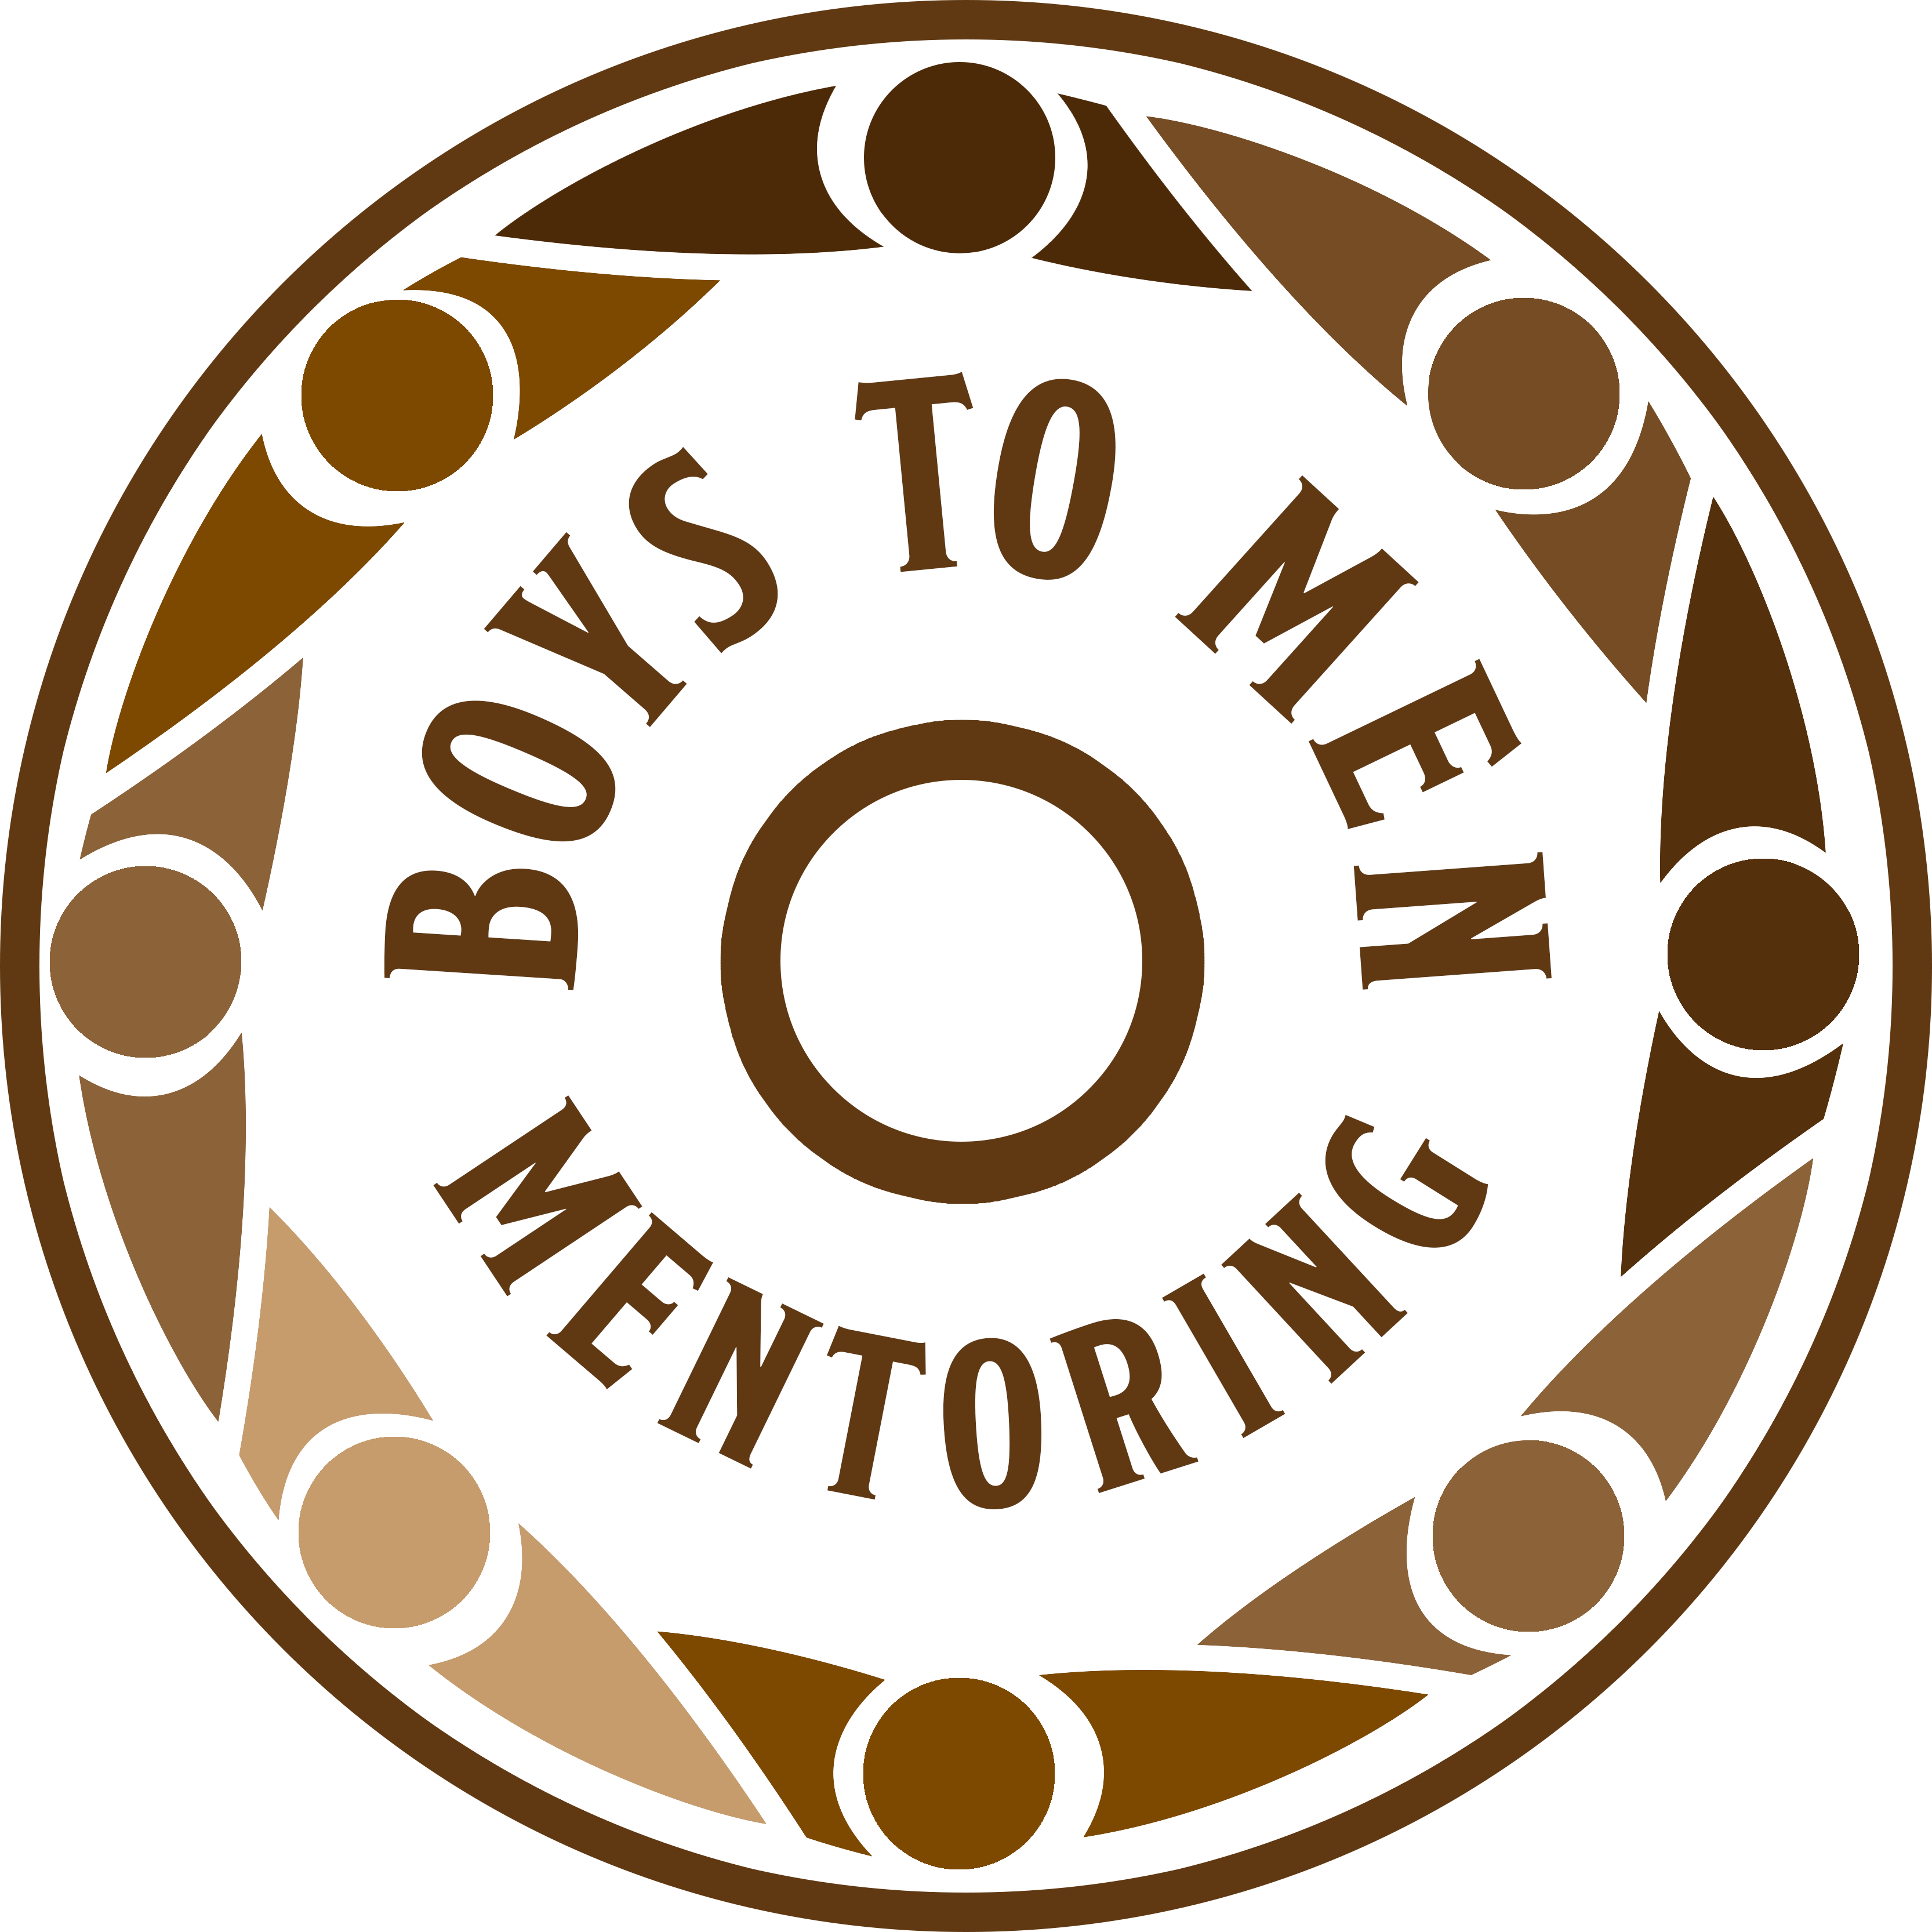 64f88f2801 Boys To Men Mentoring - Play It Forward Re-Mix. Thursday, 6/20th from  6:00pm-9:00pm. Granite Mountain Brewing. Why a Re-Mix of our Play It  Forward event ...